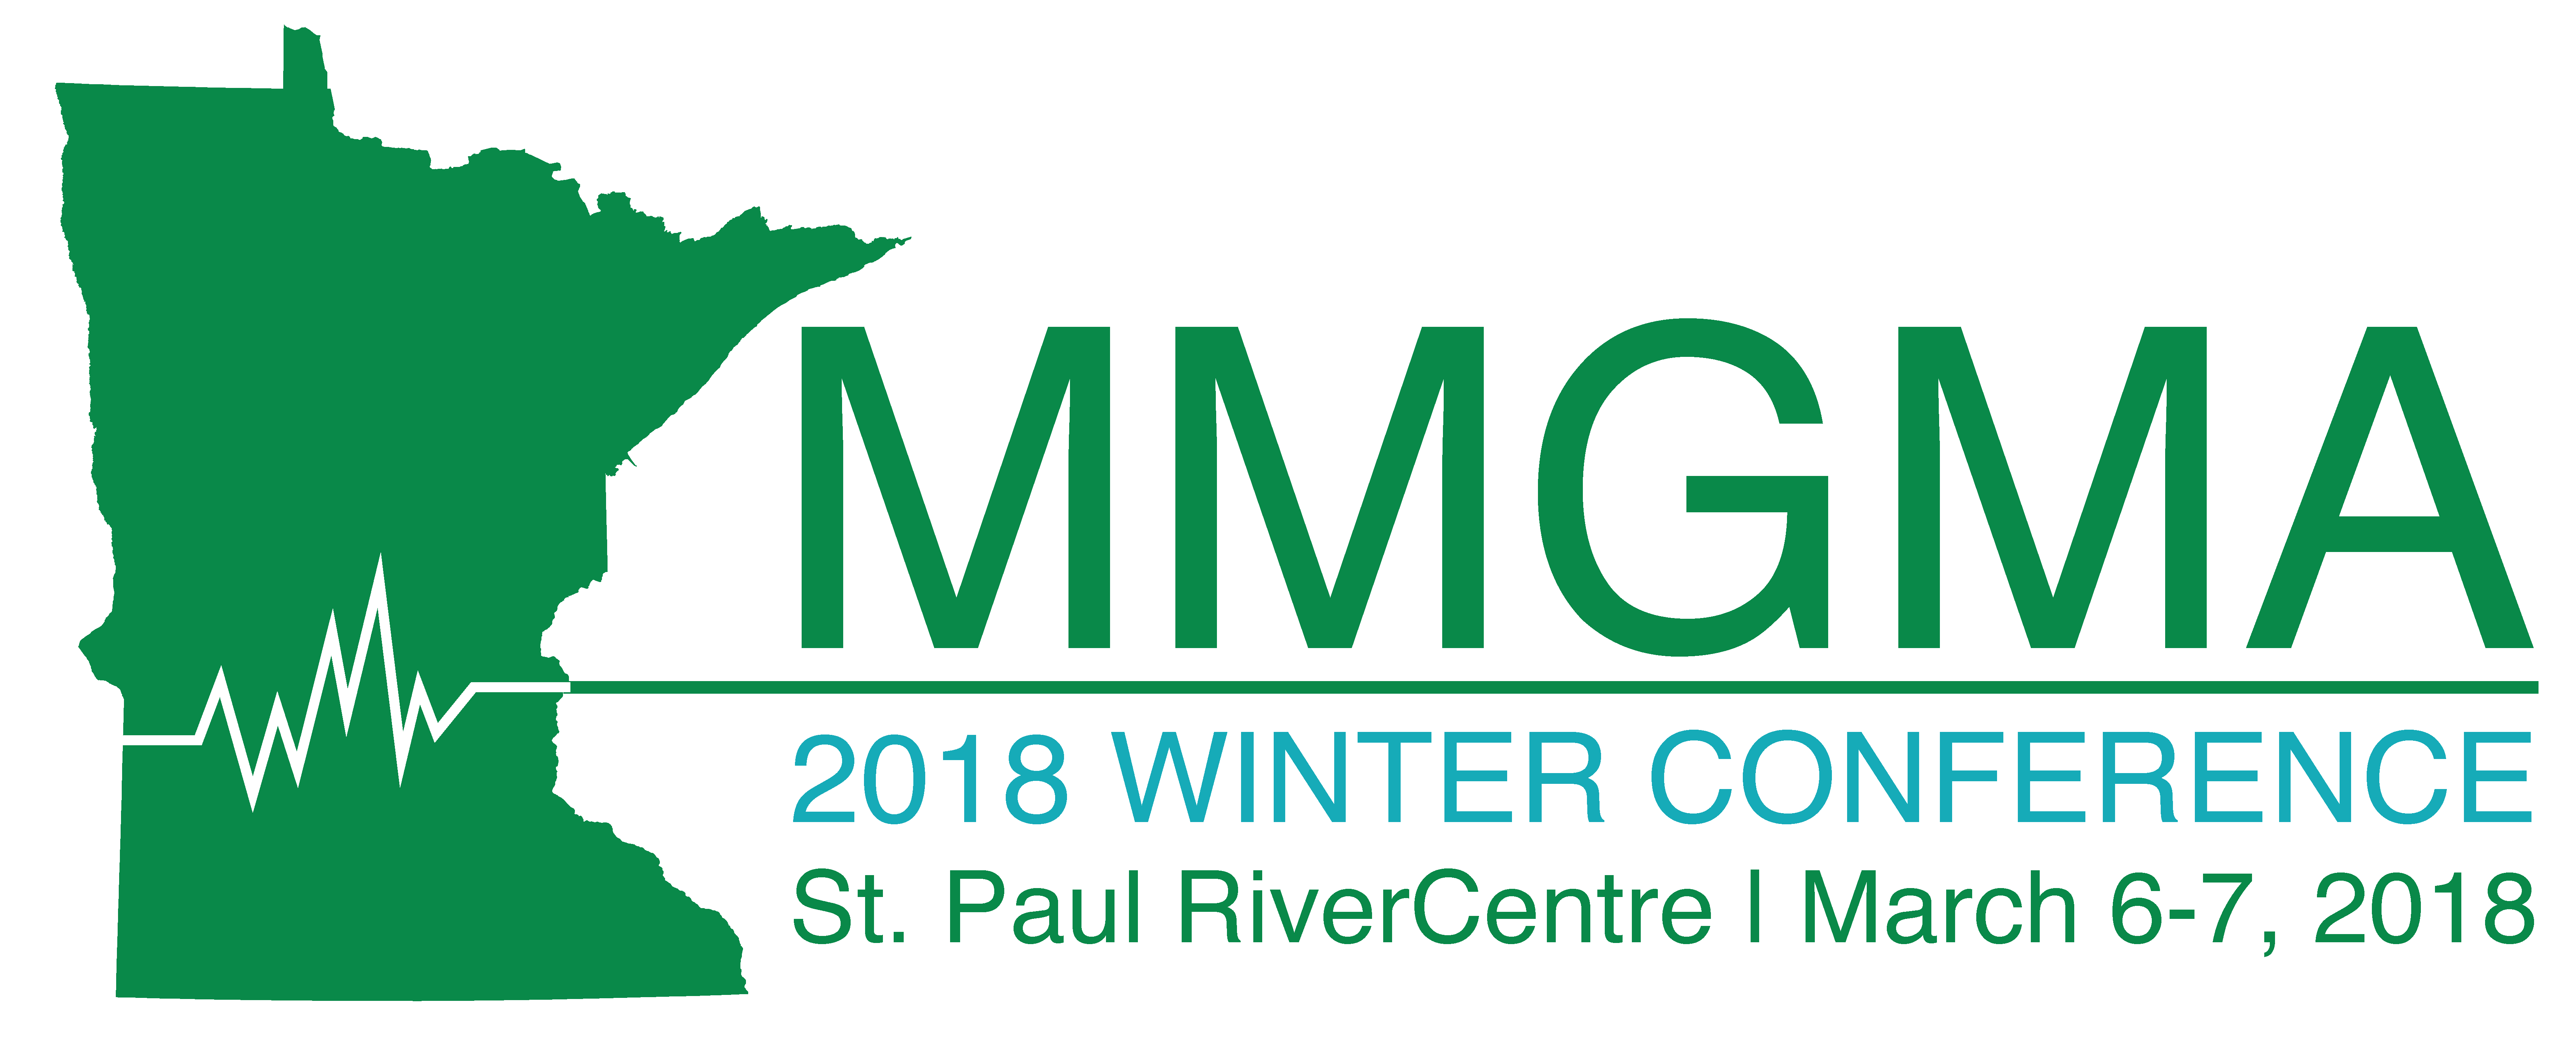 MMGMA 2018 Winter Conference logo